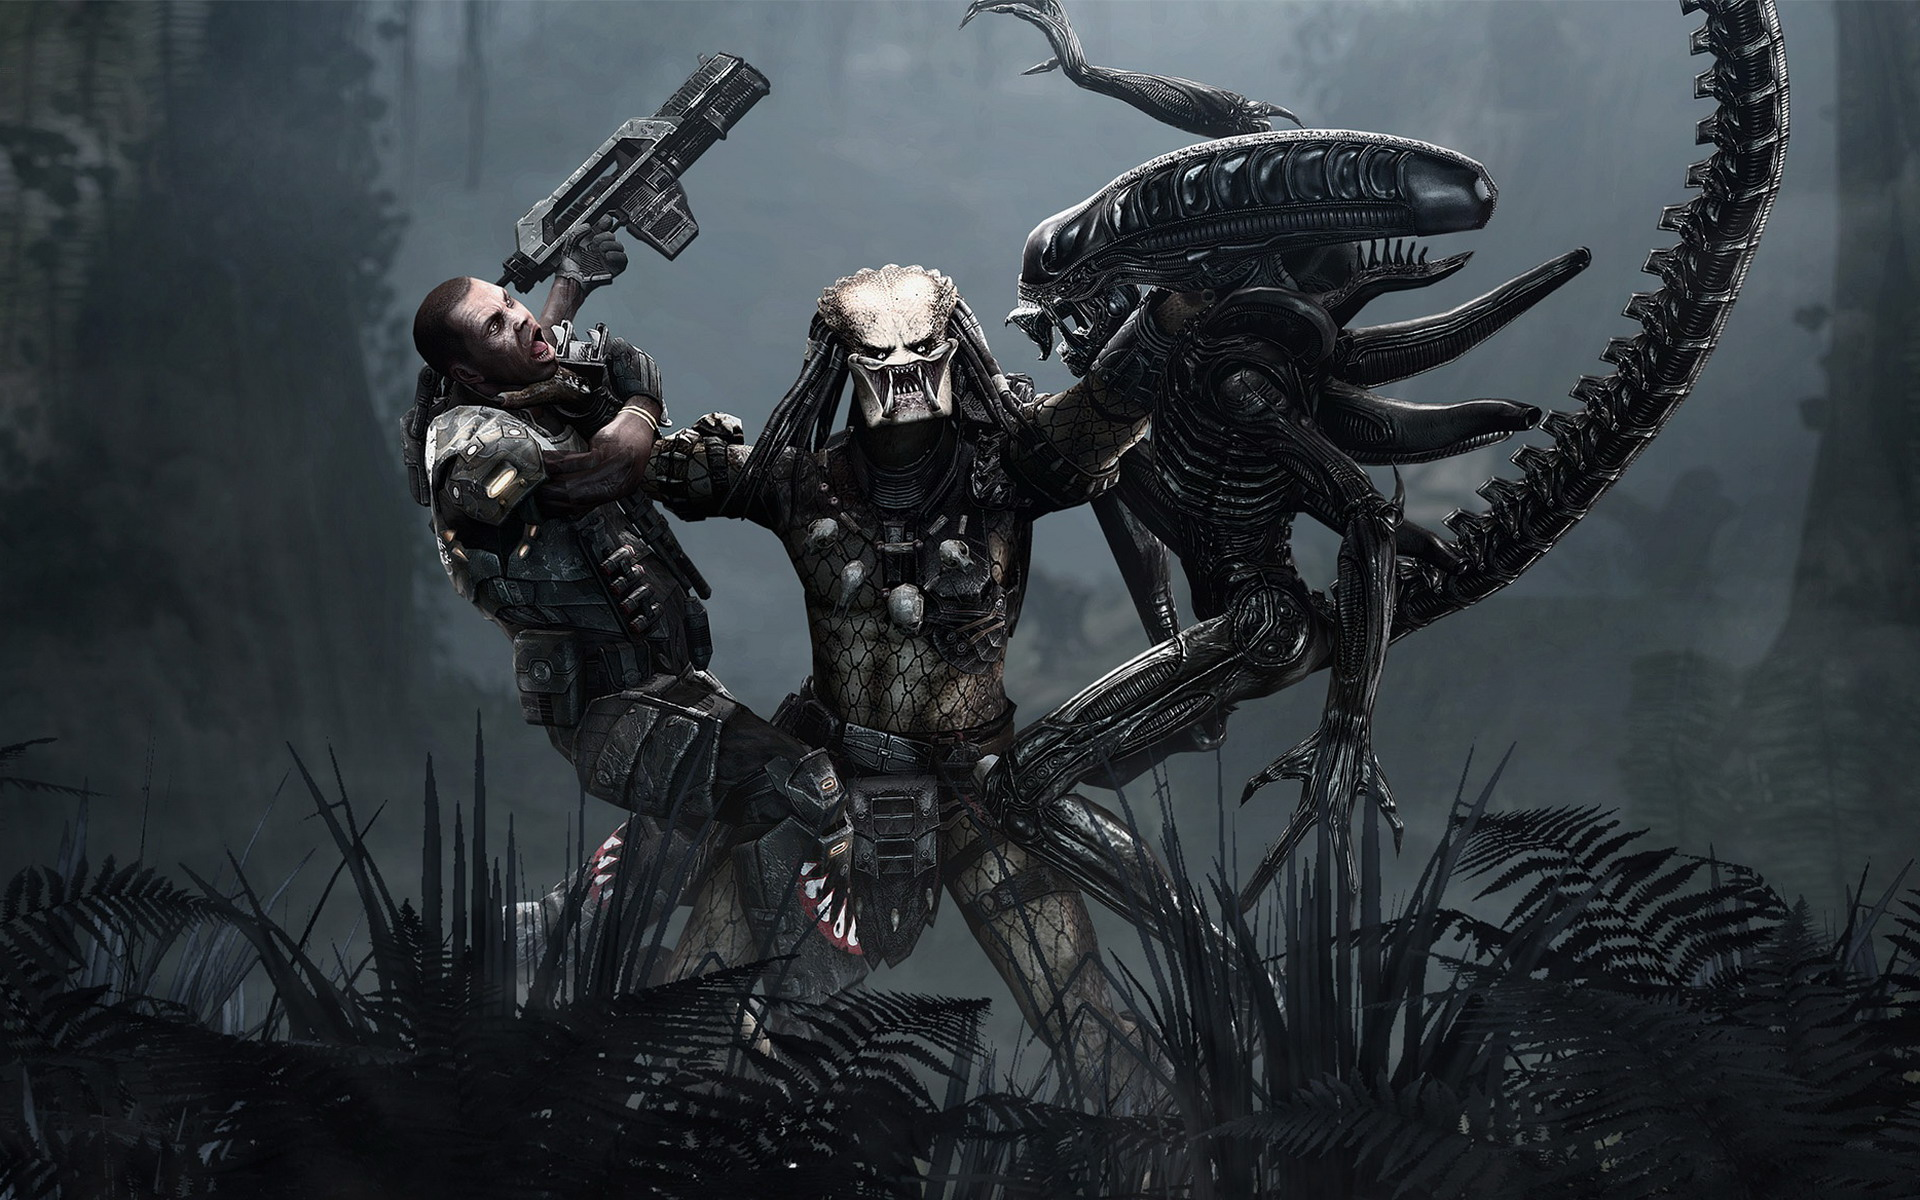 Alien Vs. Predator #2